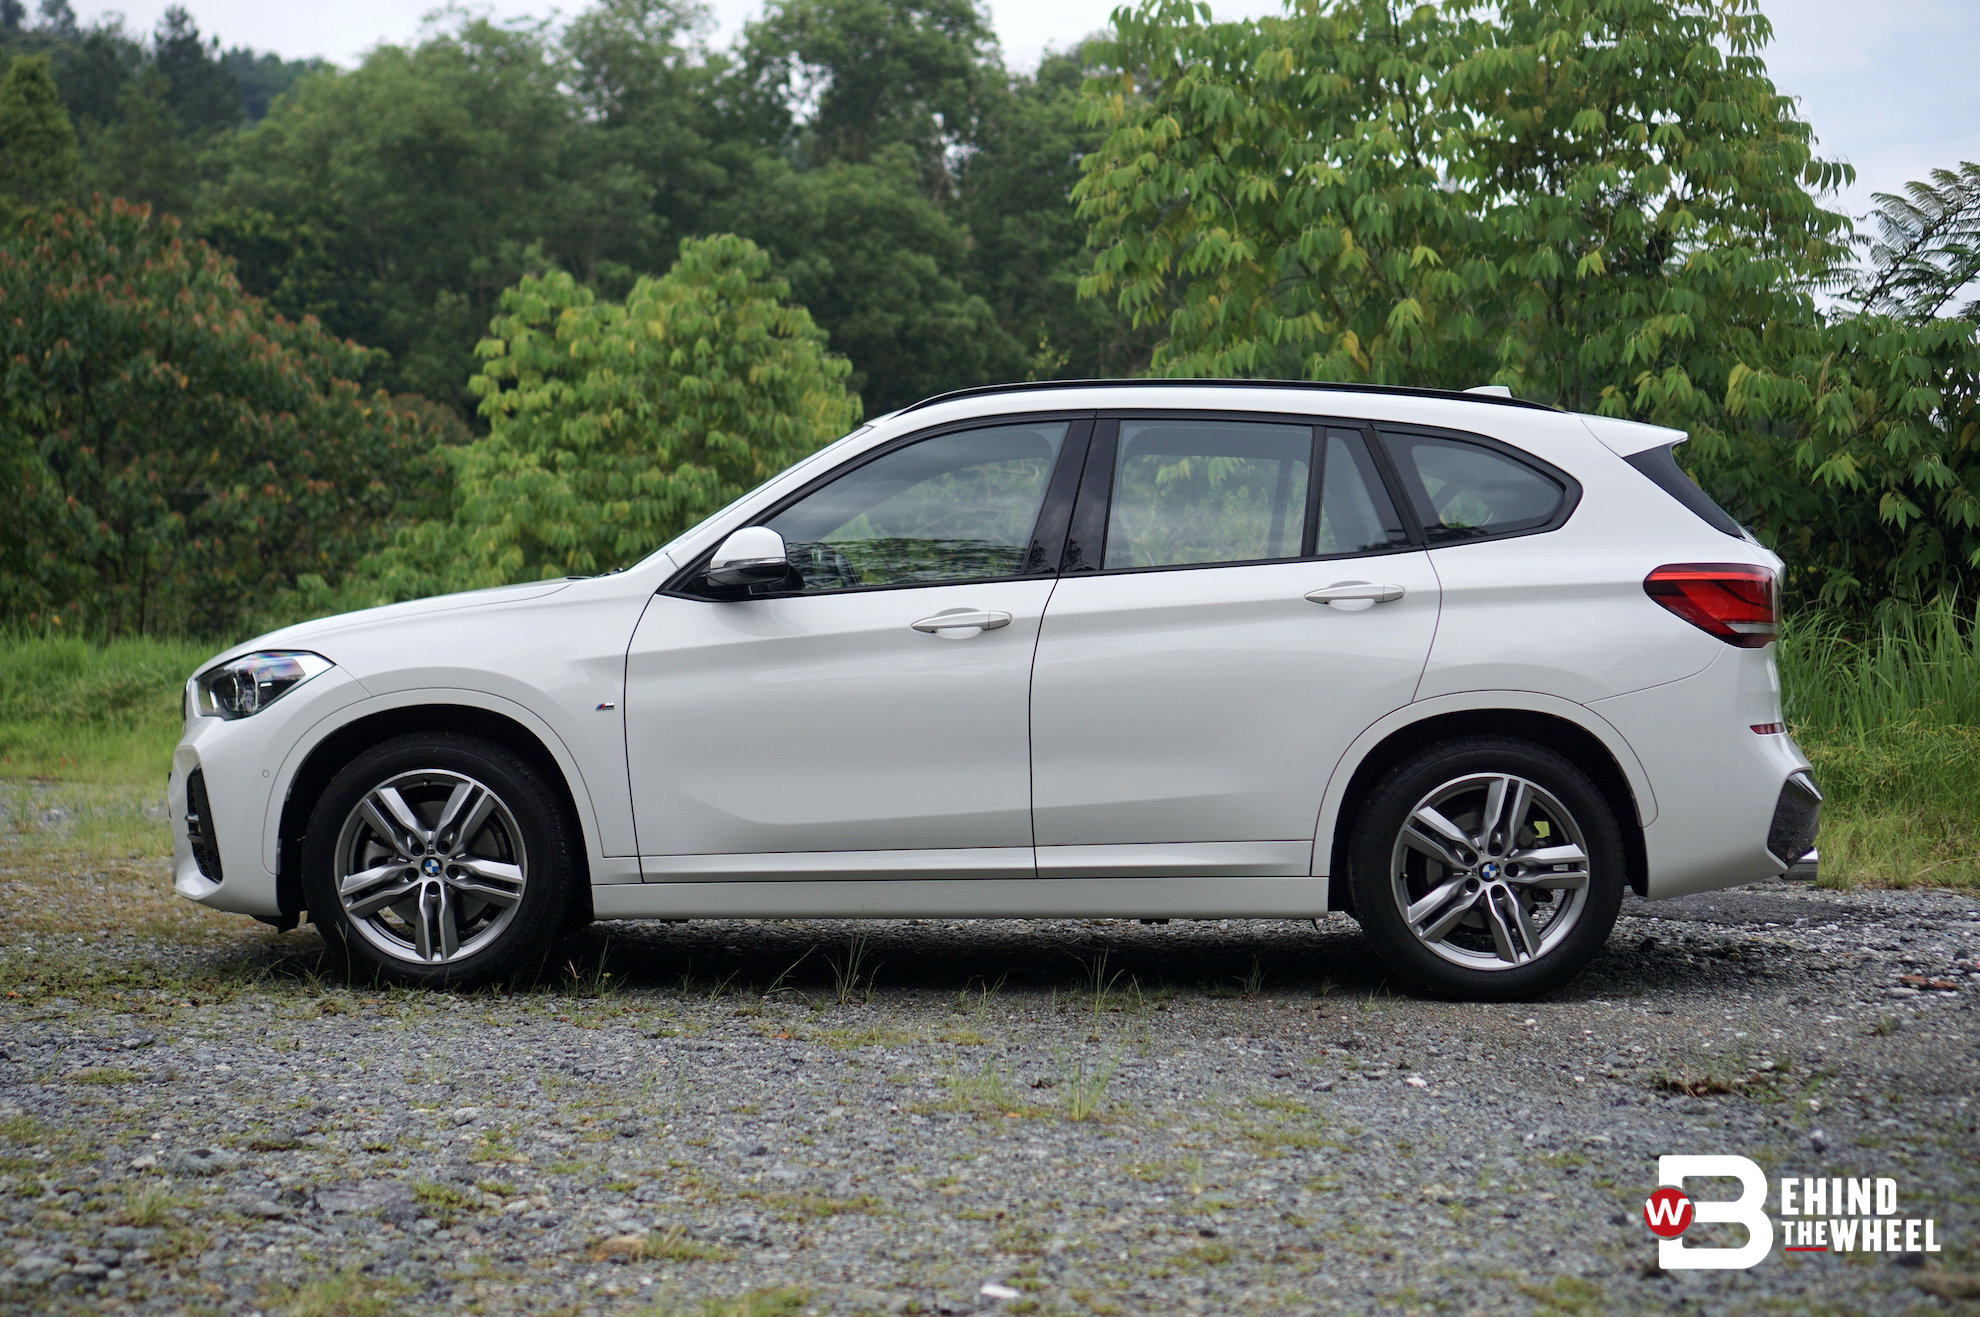 [REVIEW] BMW X1 Is A Genre-Bender That Appeals To All In So Many Ways